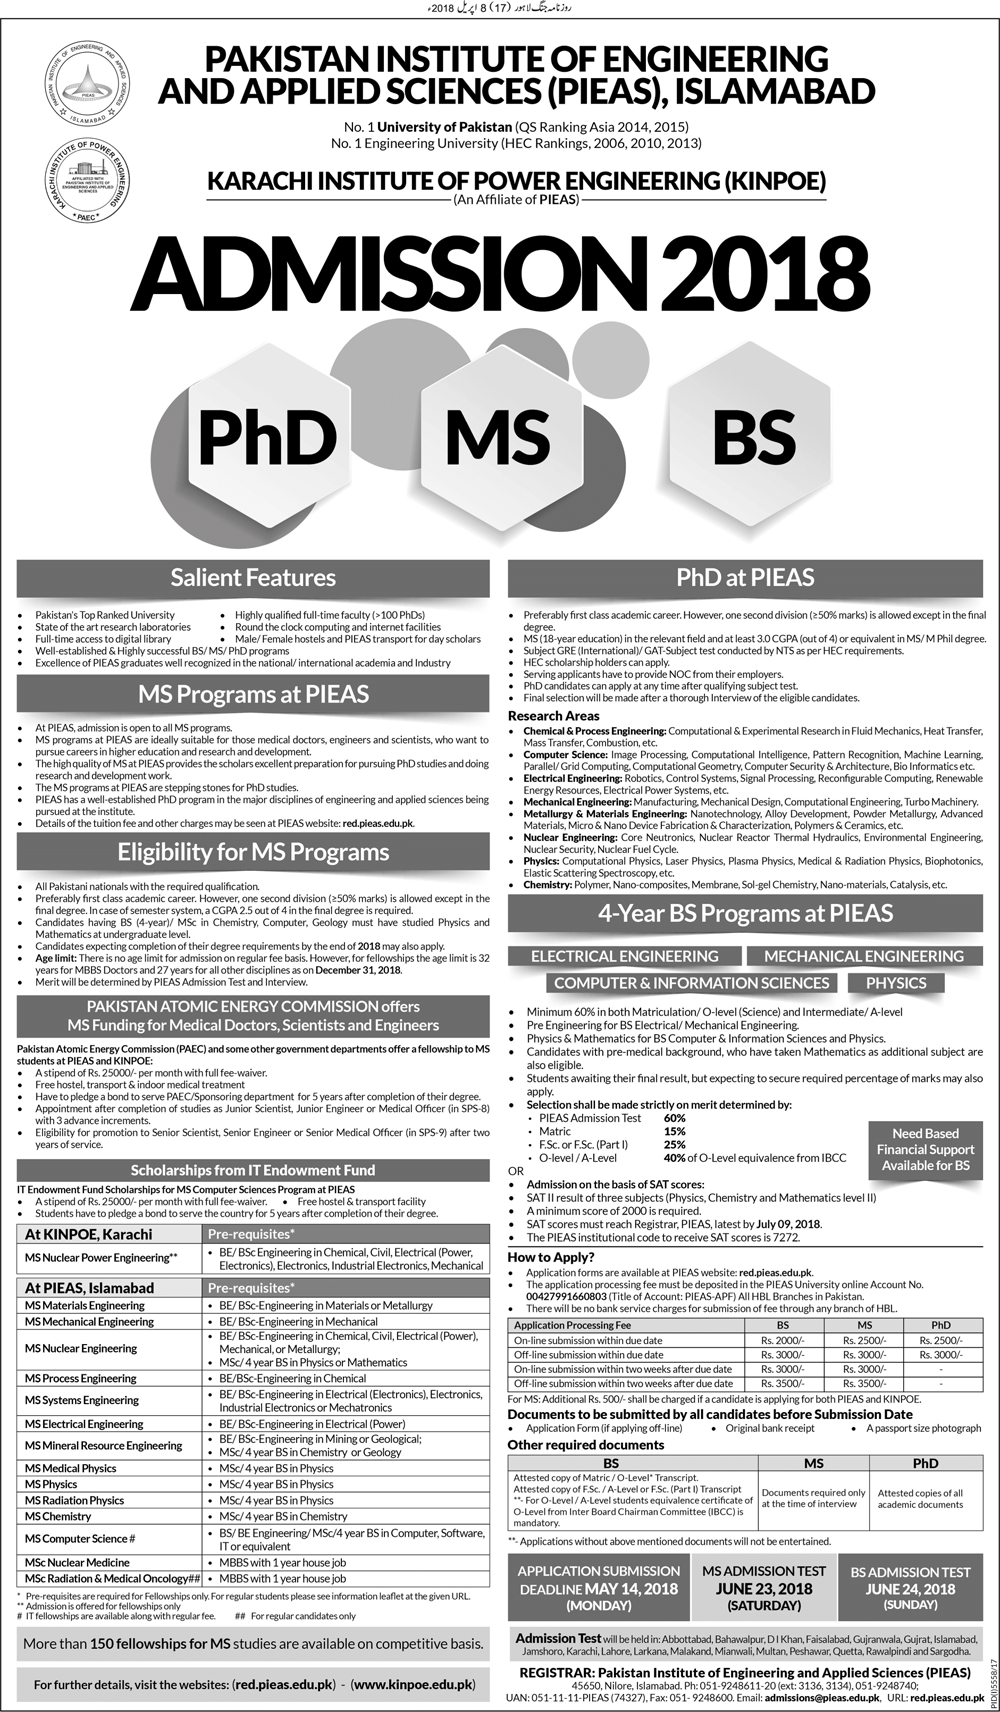 PIEAS Admission 2018 Advertisement